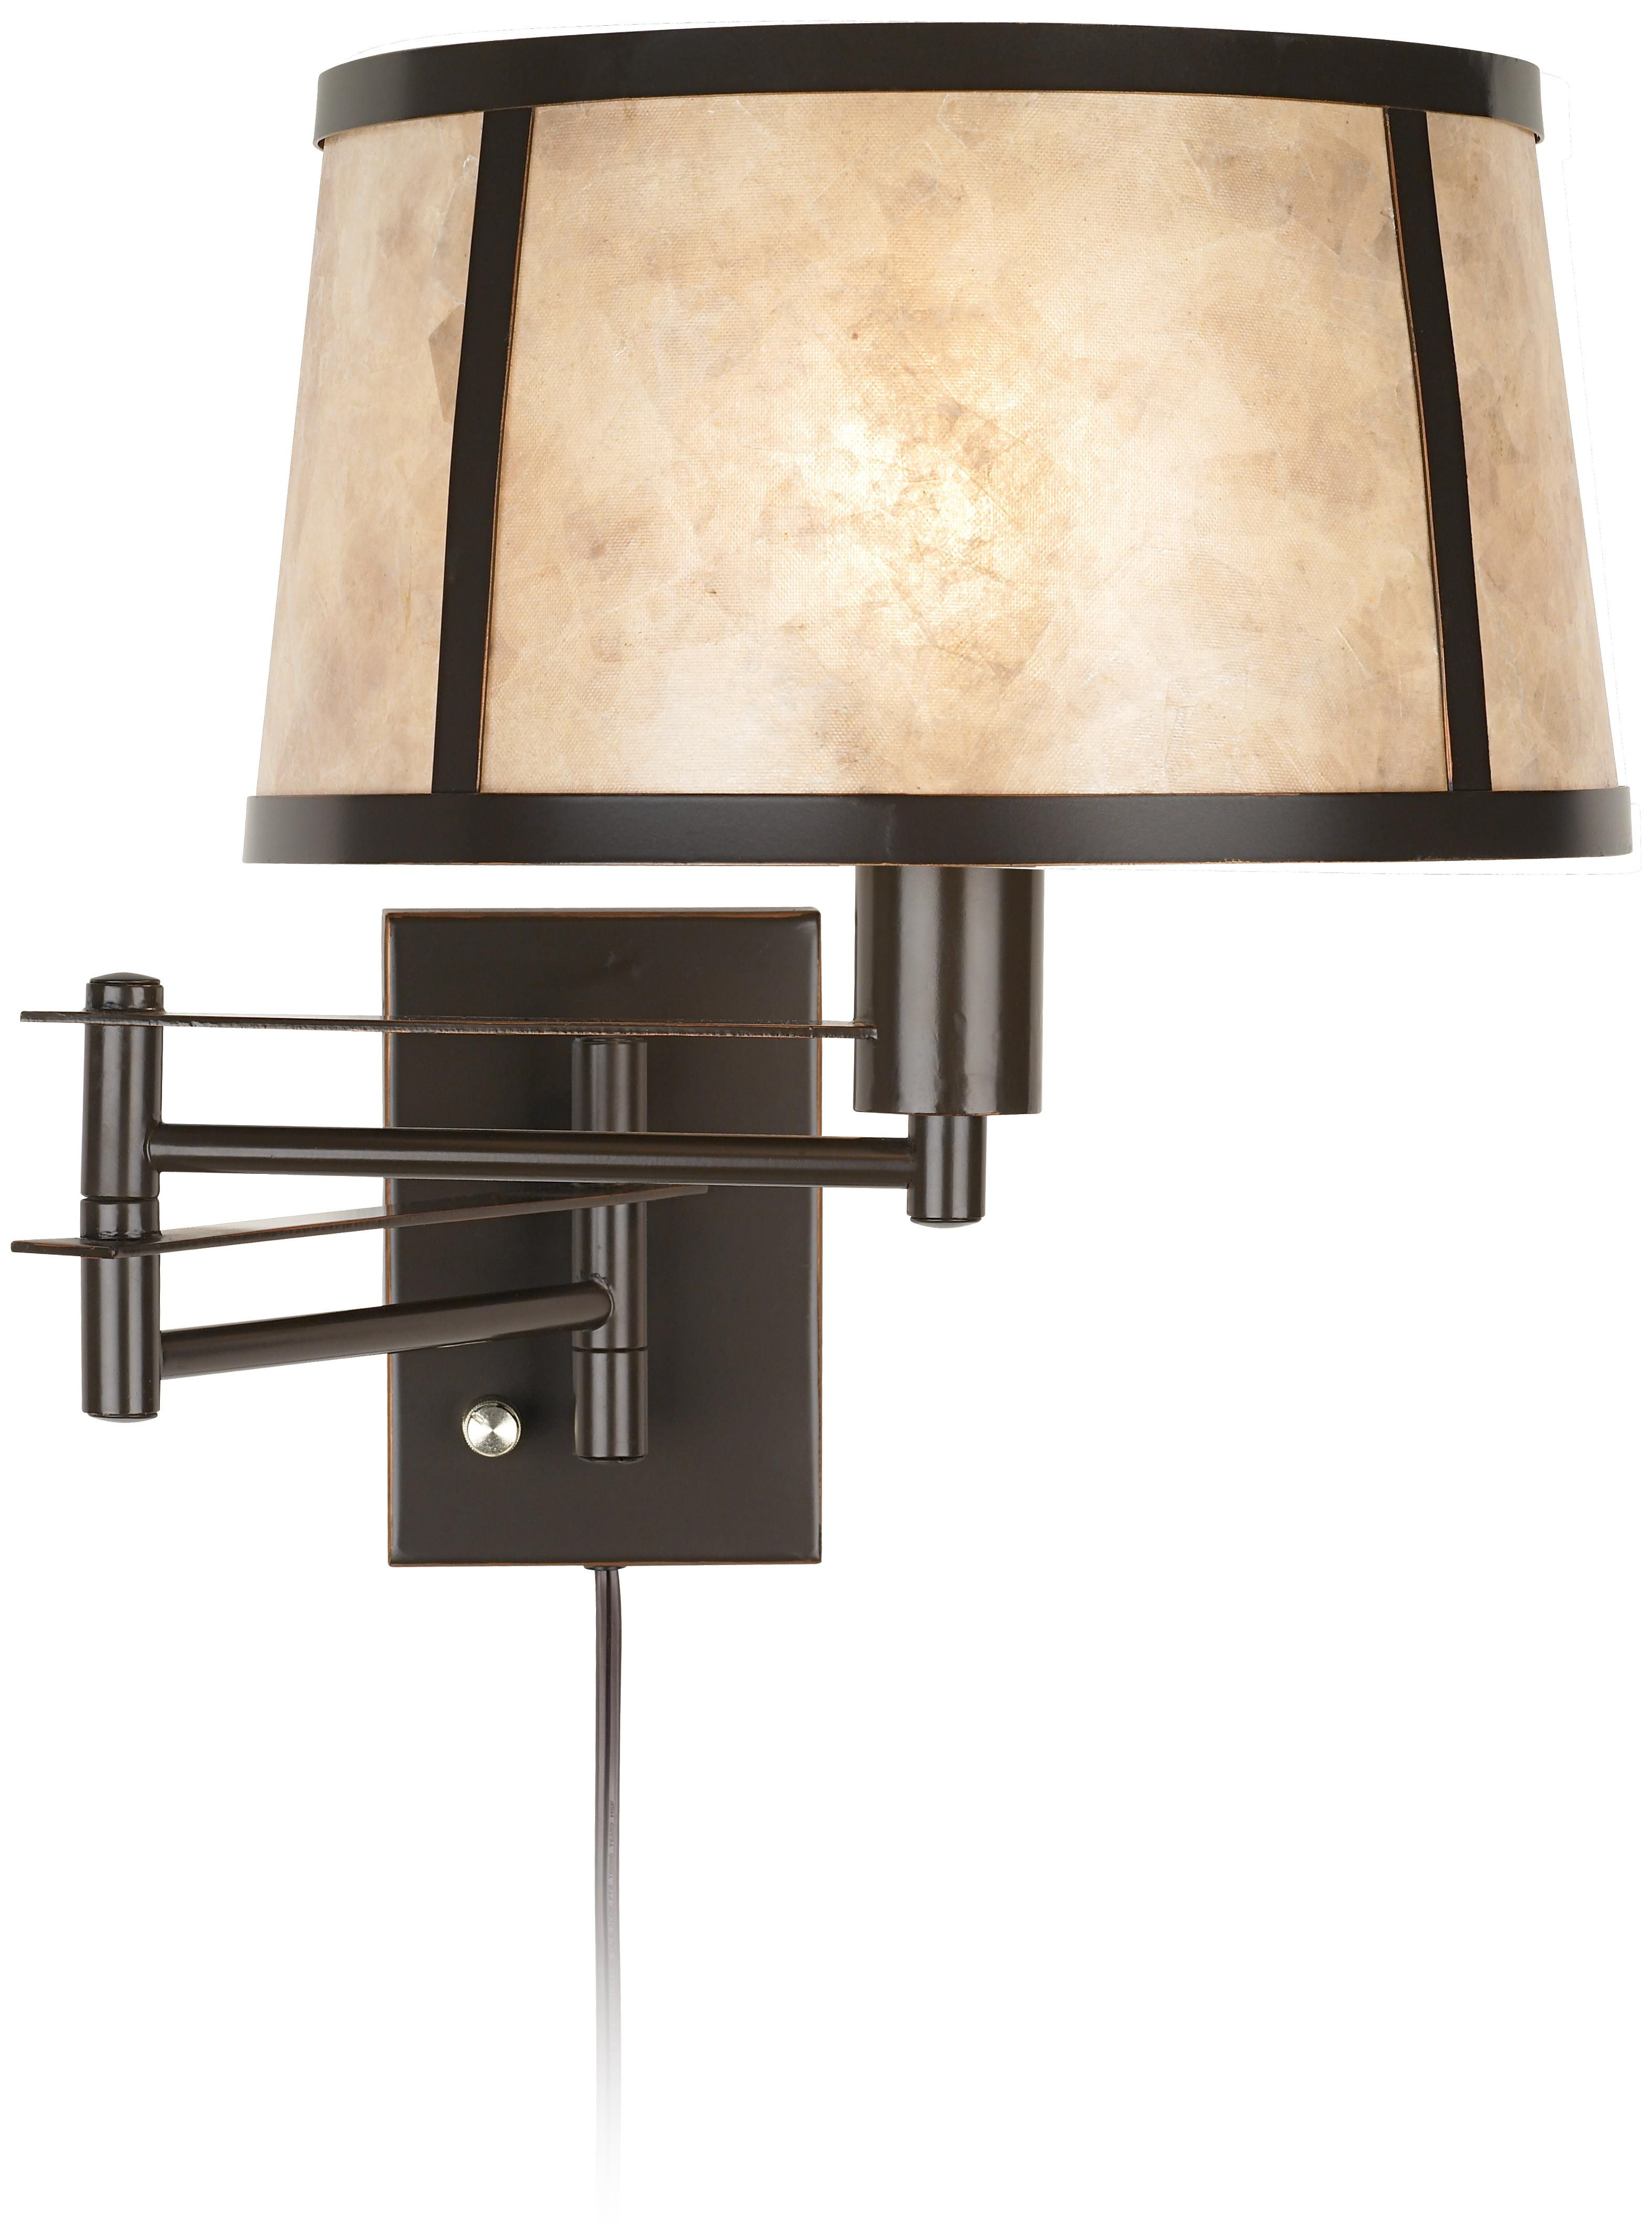 light top ingenuity for plug that in adjustable class furniture sconces best with sconce first lights cord design lamps ideas lighting lamp wall bedroom